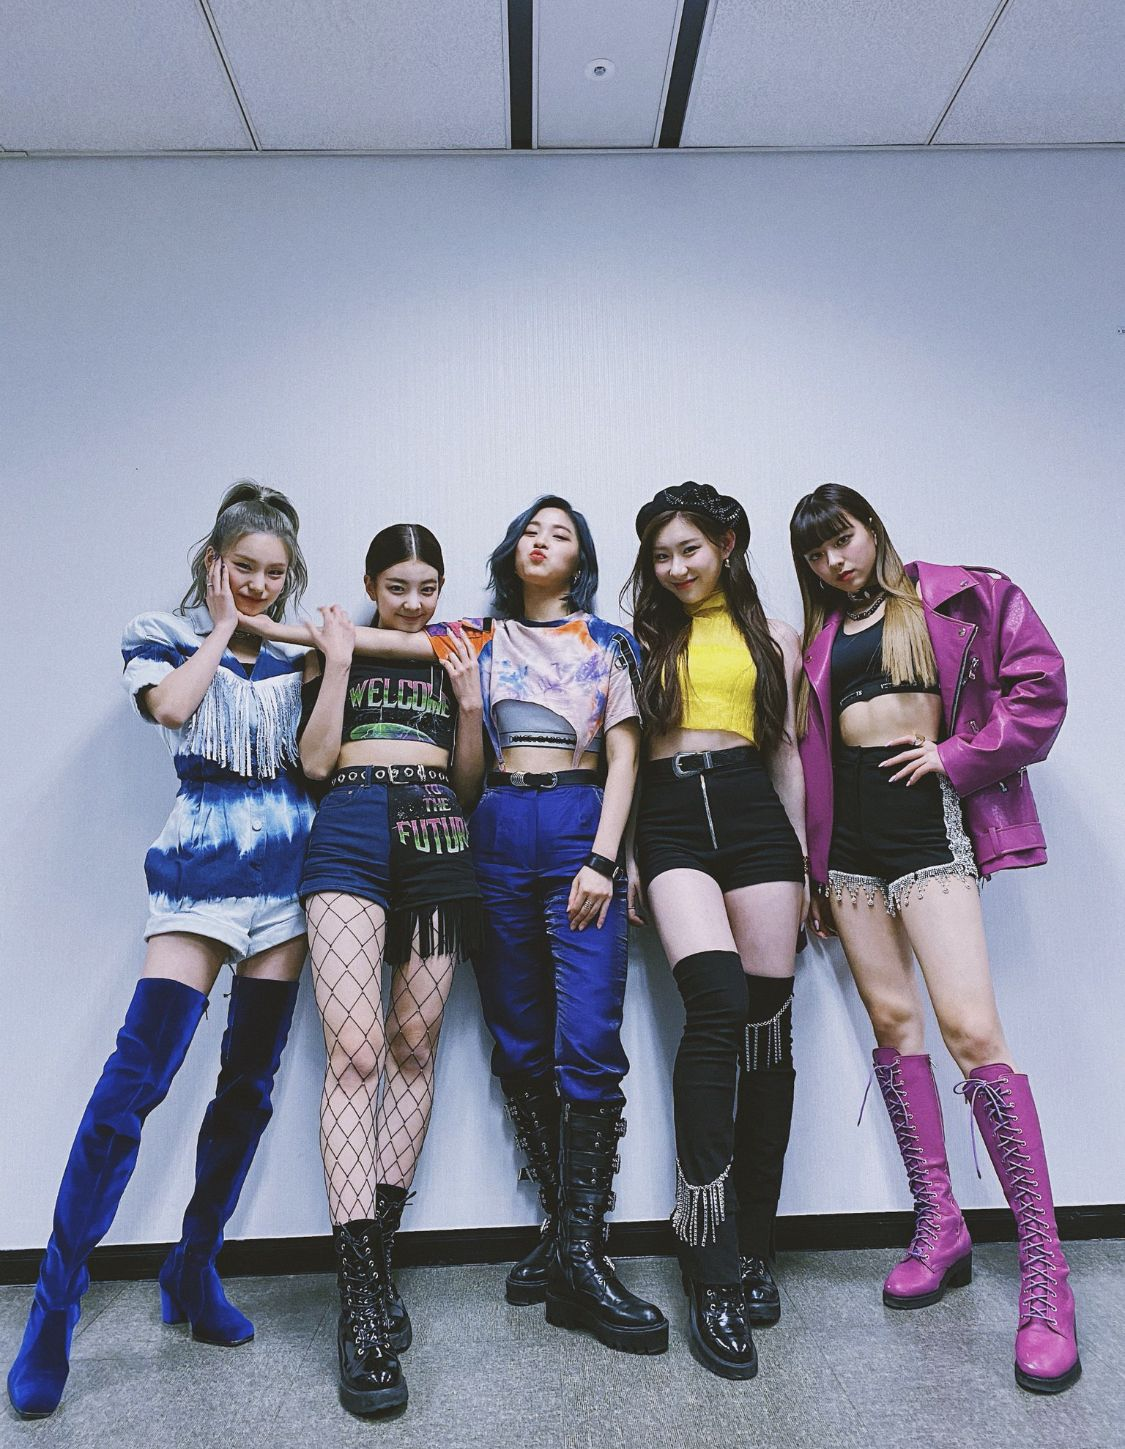 Pin by uwulex ♡ on itzy in 2020 (With images) Itzy